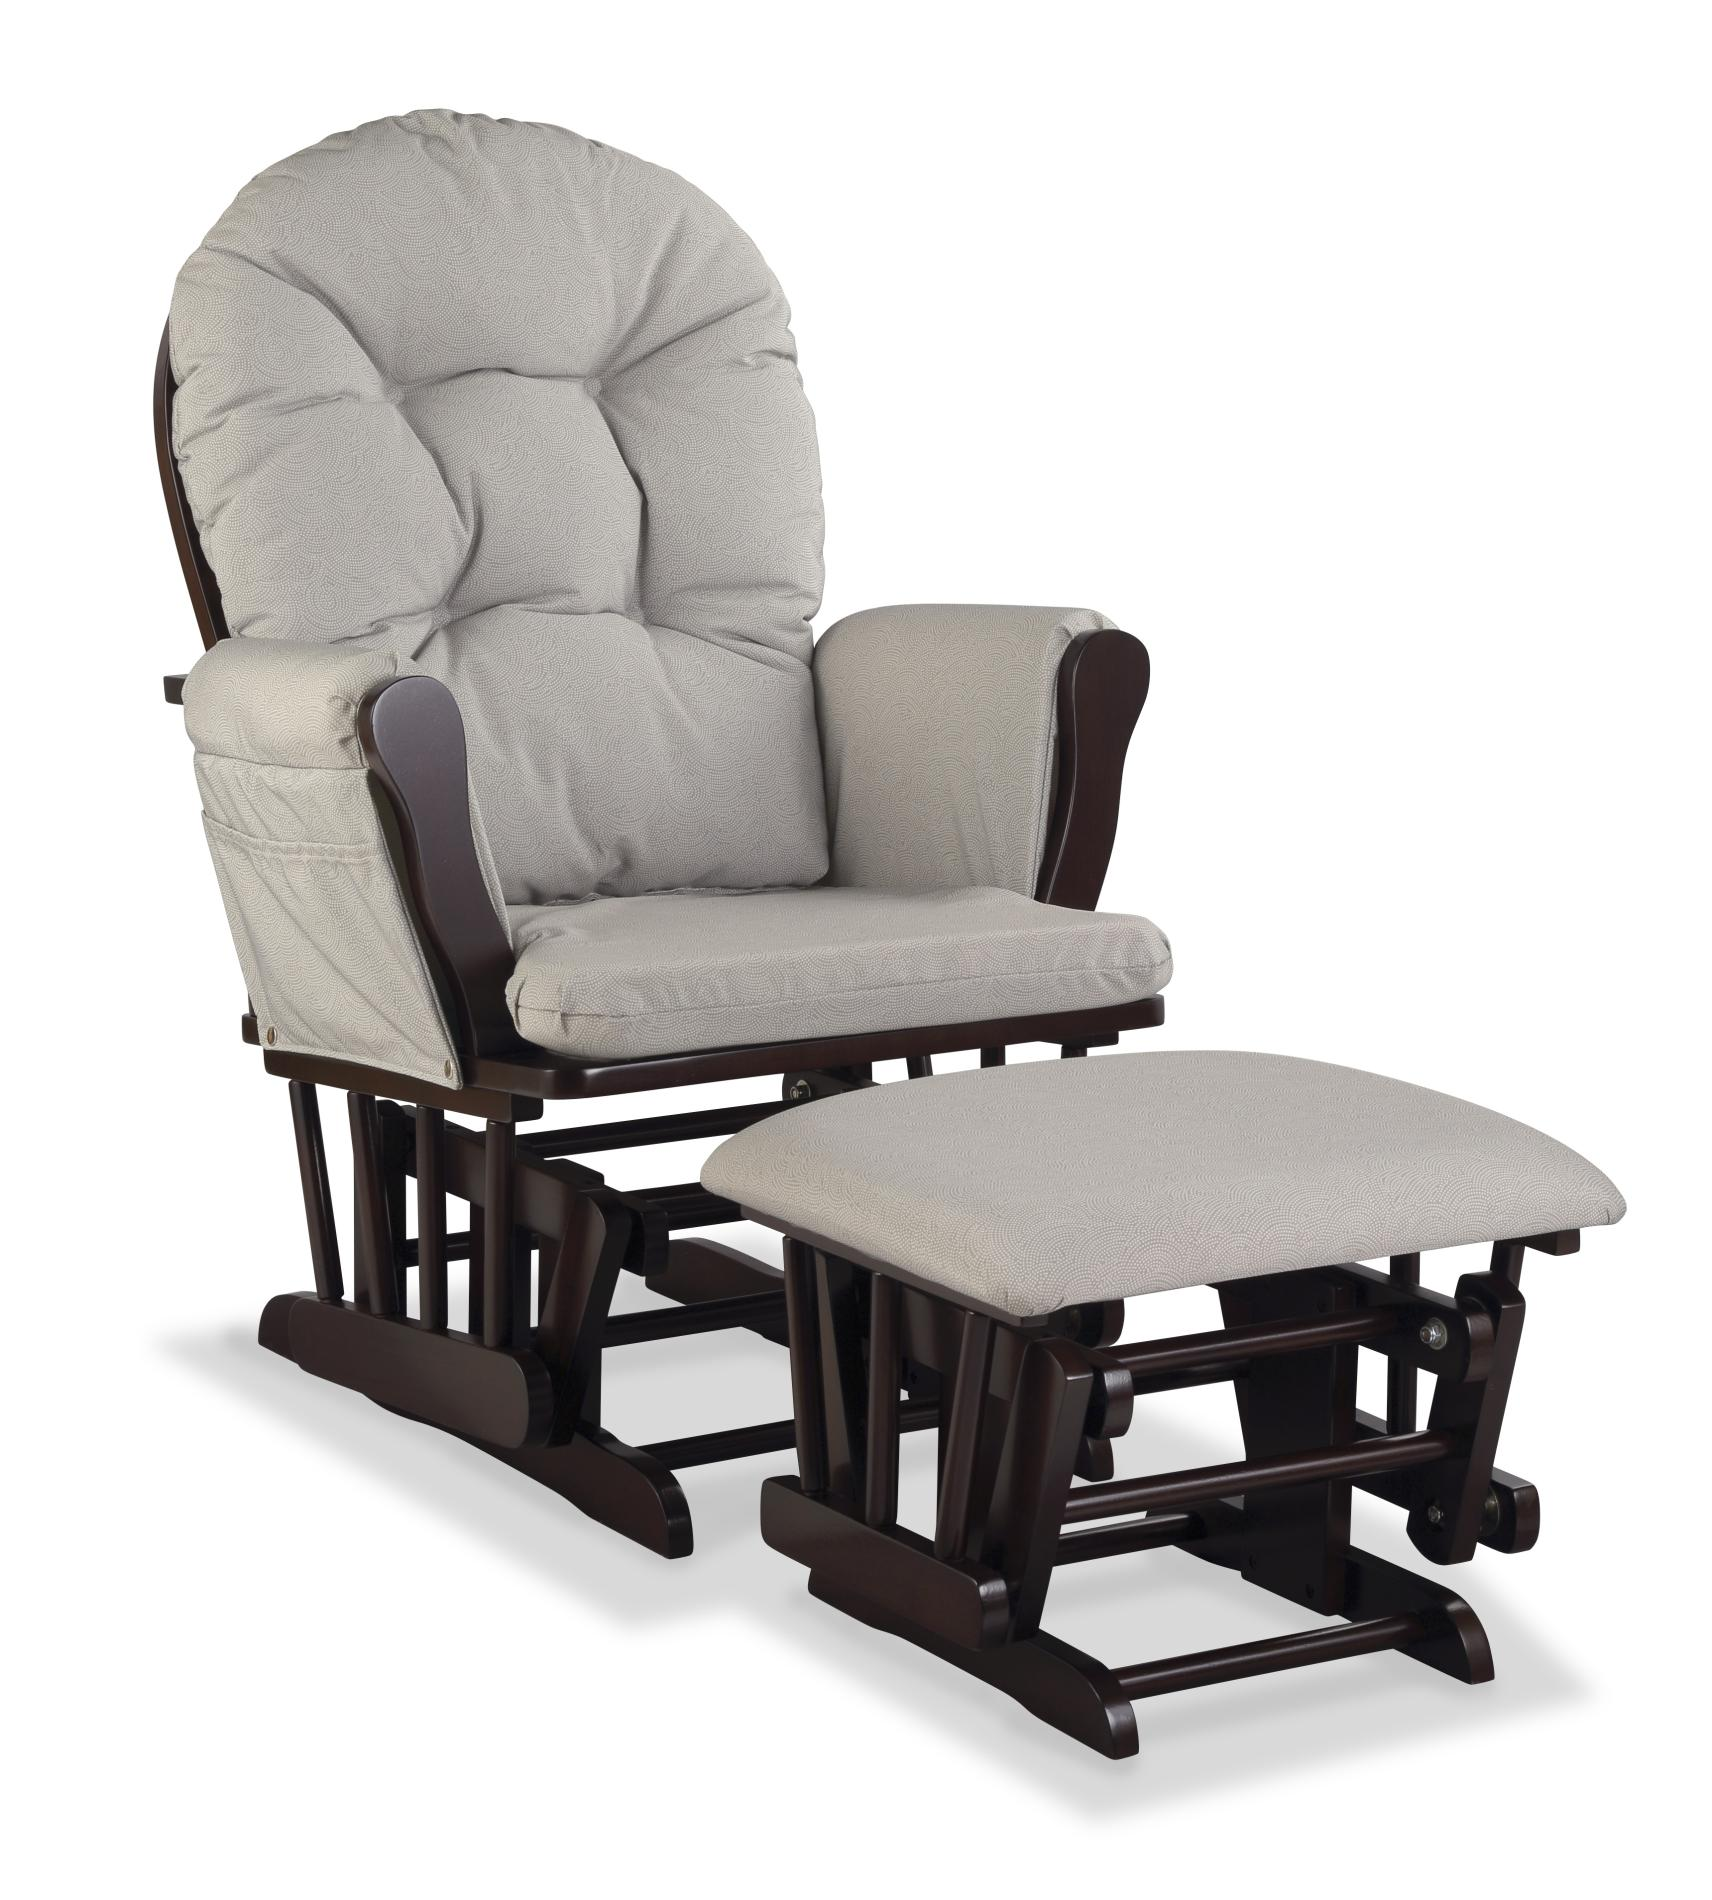 Upc 056927095049 Nursery Glider Chair Ottoman